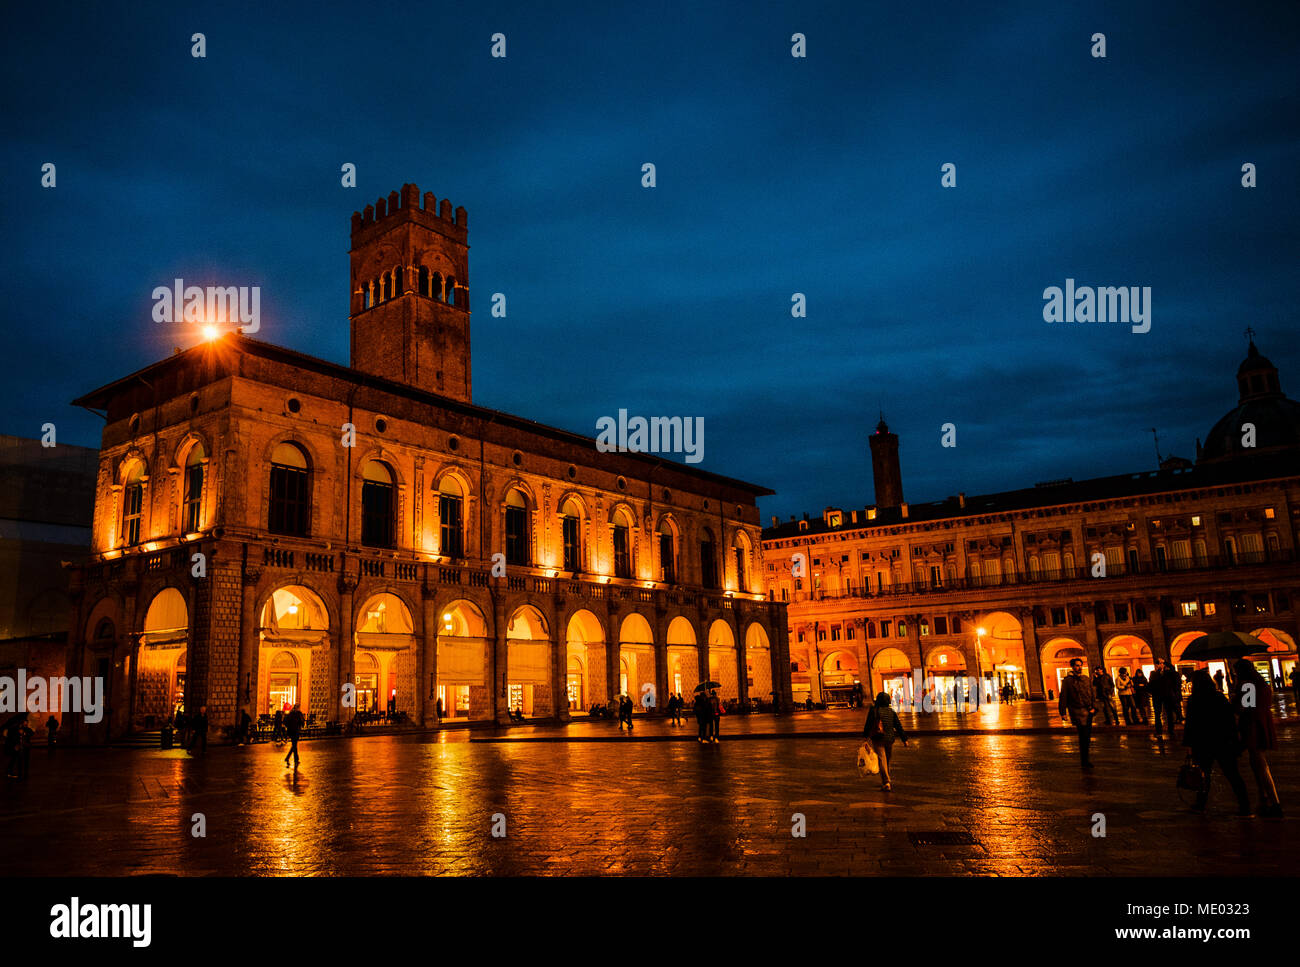 Flooflit buildings in the Piazza Maggiore on a wet rainy evening, Bologna, Italywet evening - Stock Image